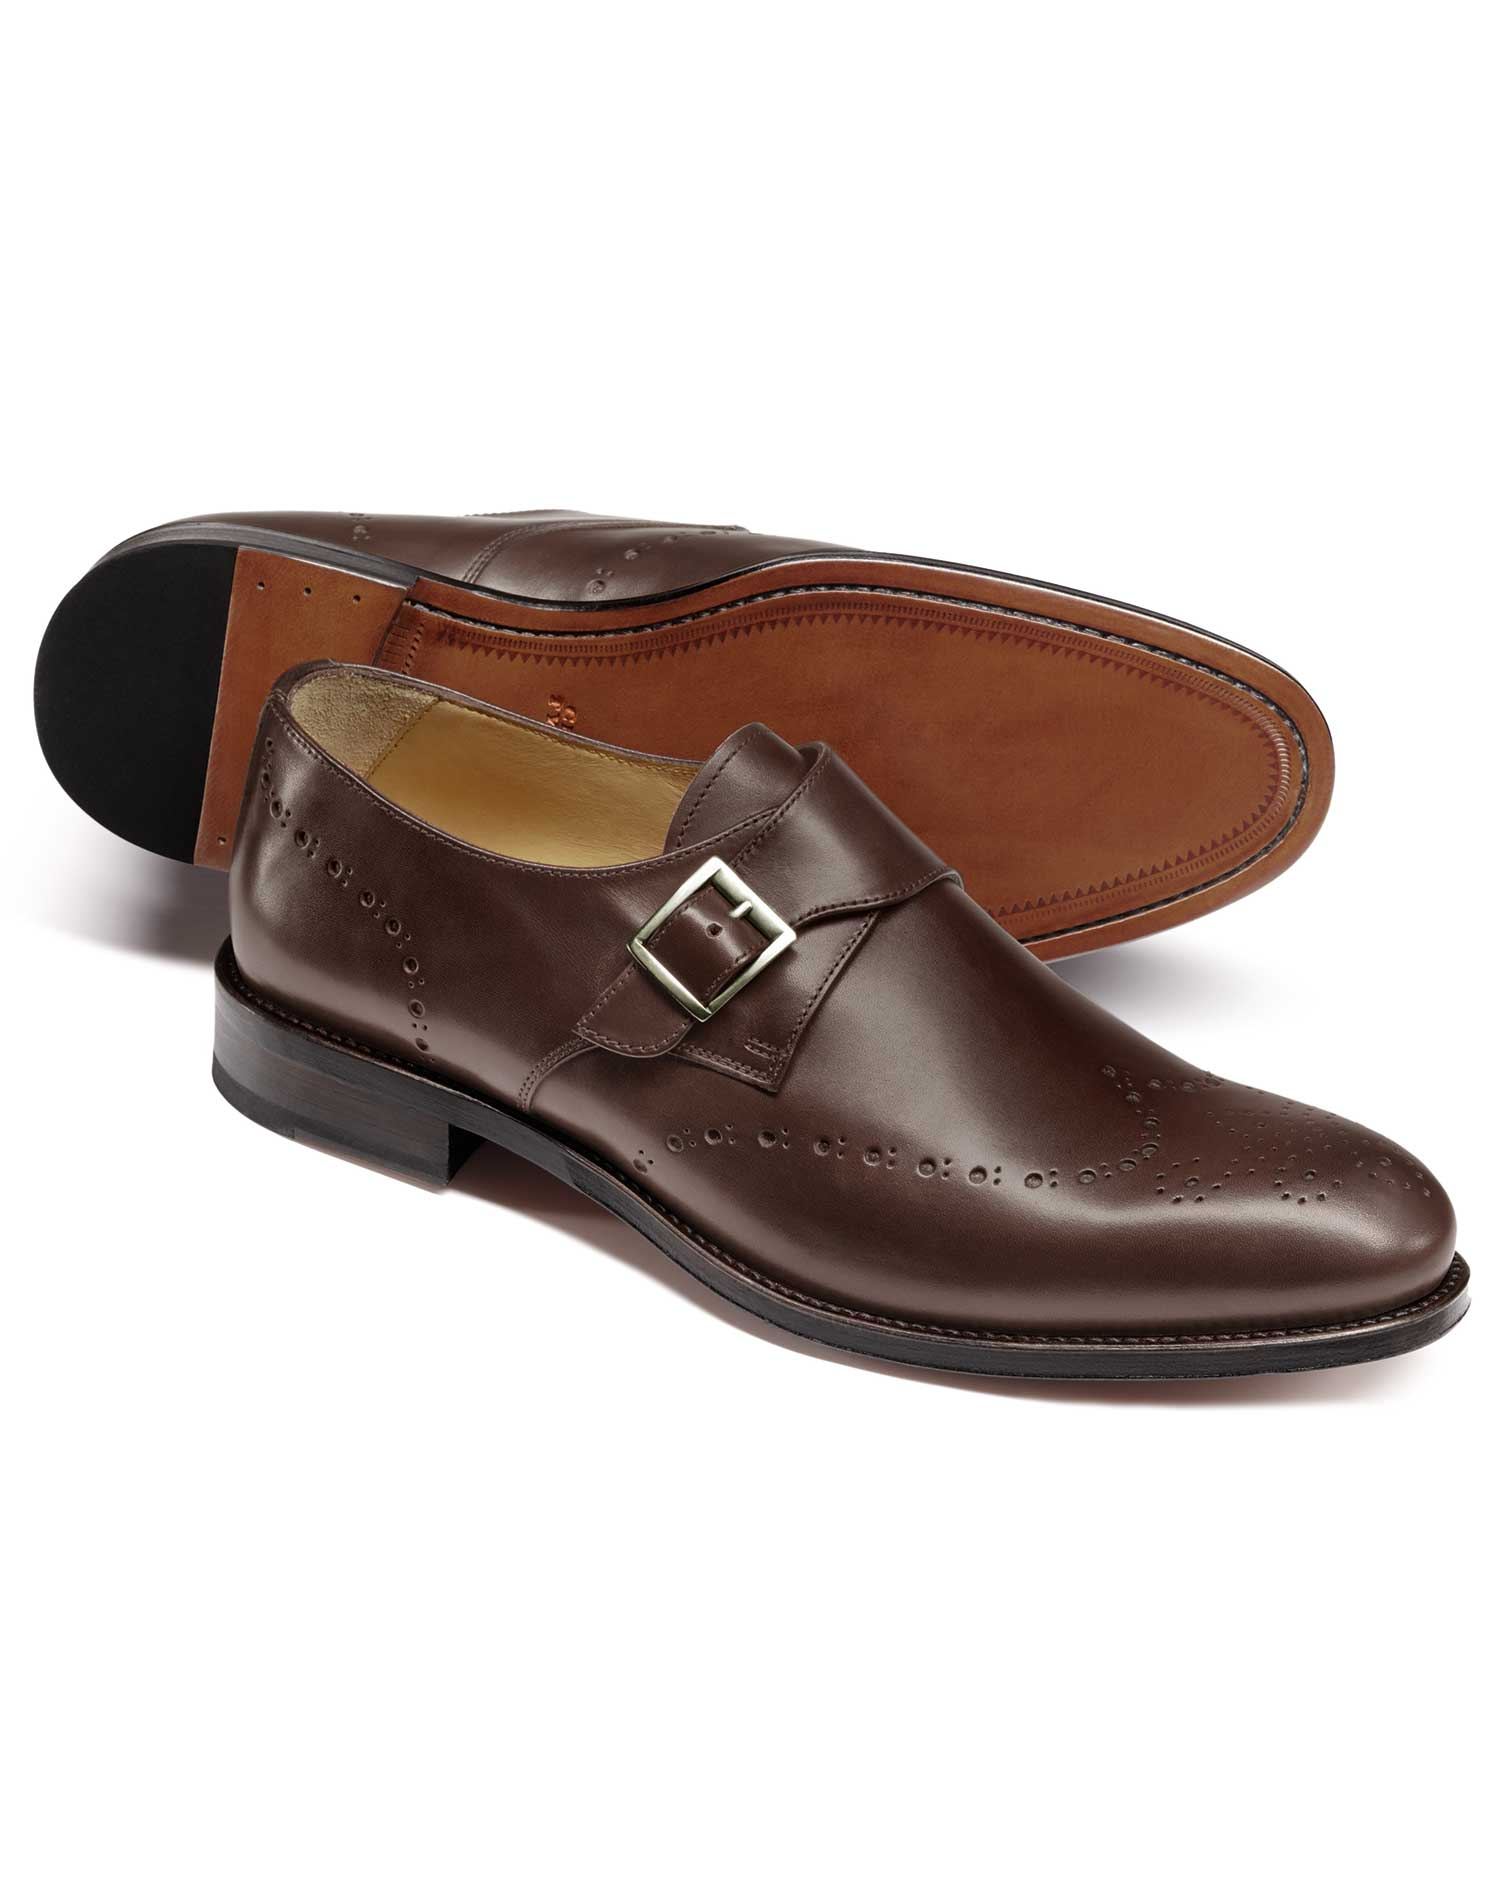 Chocolate Brogue Monk Shoes Size 8 R by Charles Tyrwhitt